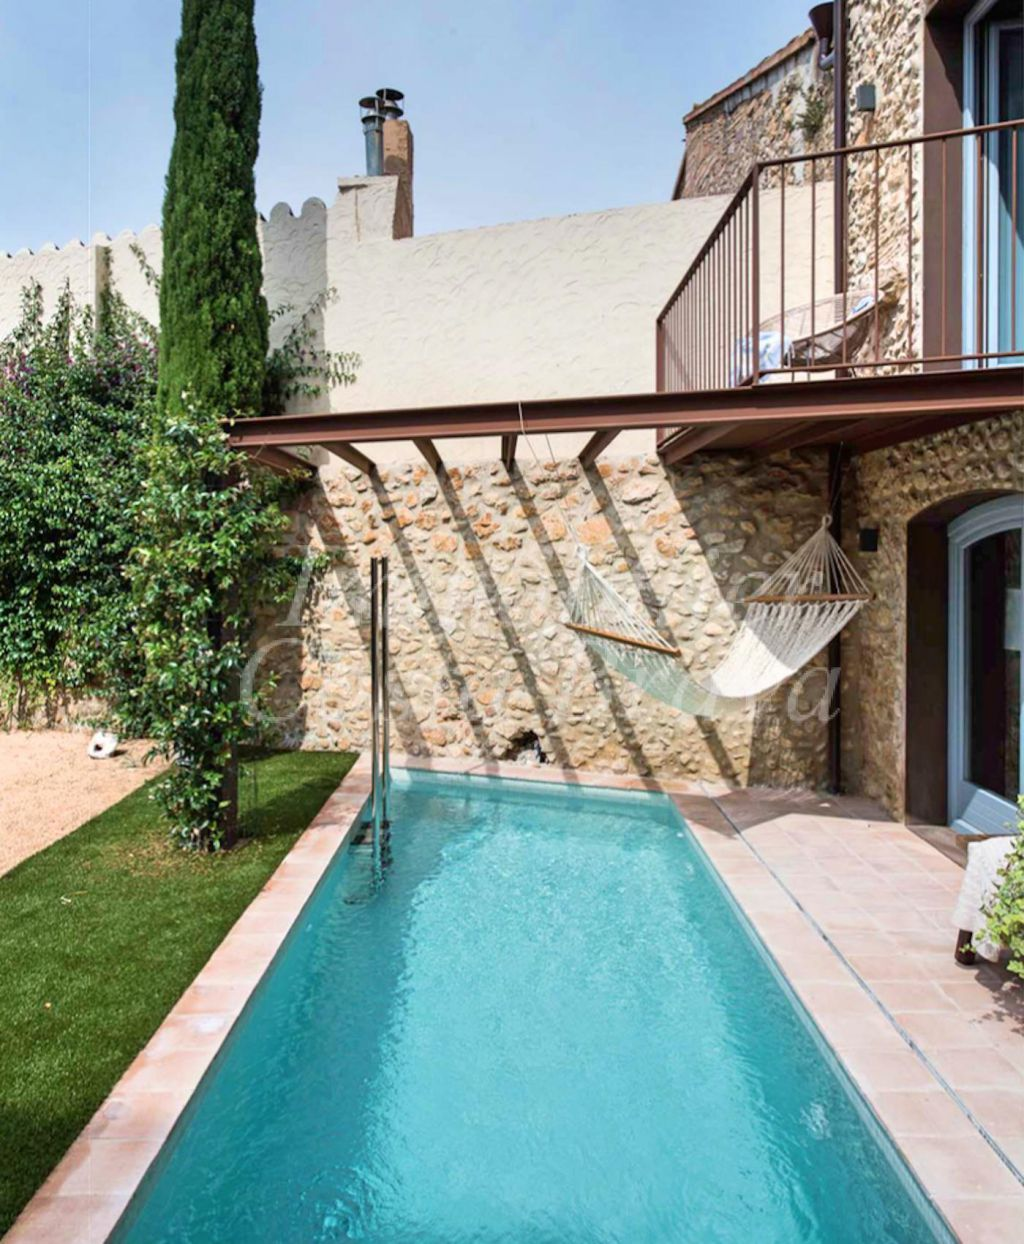 Beautiful rustic stone village house totally refurbished for sell ...